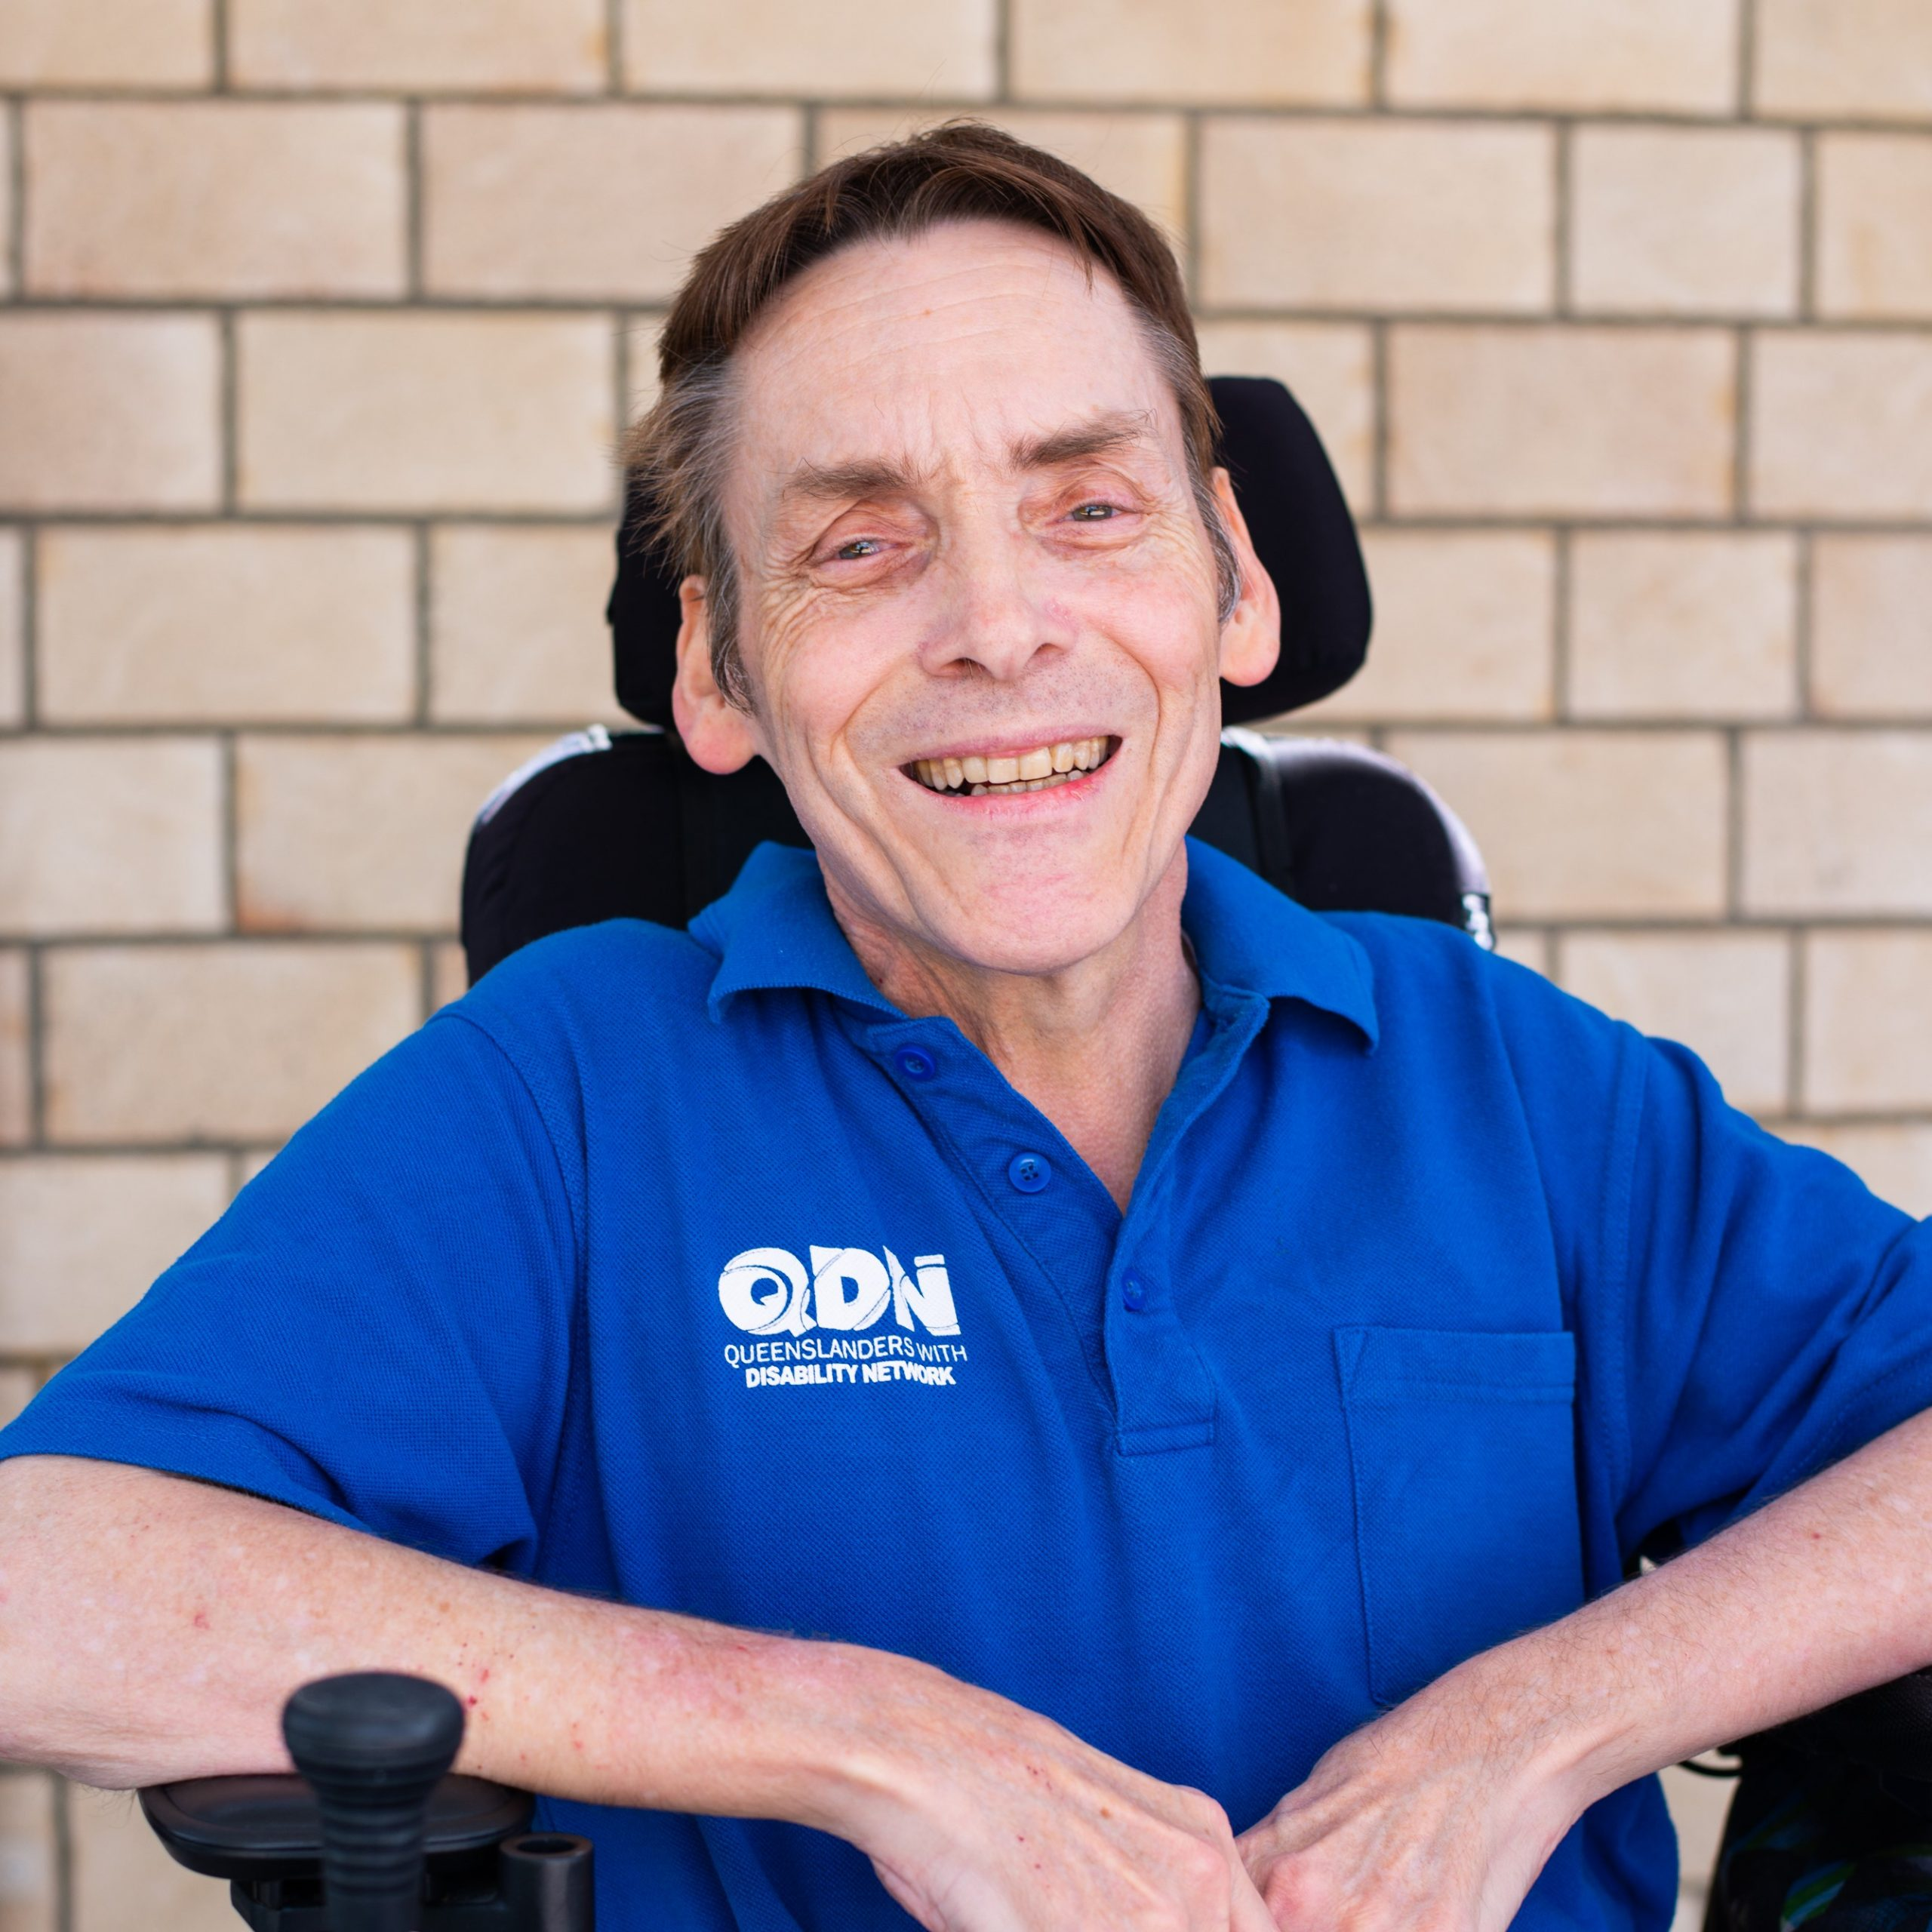 A photo of board member Peter Tully, wearing a blue QDN polo and smiling at the camera.